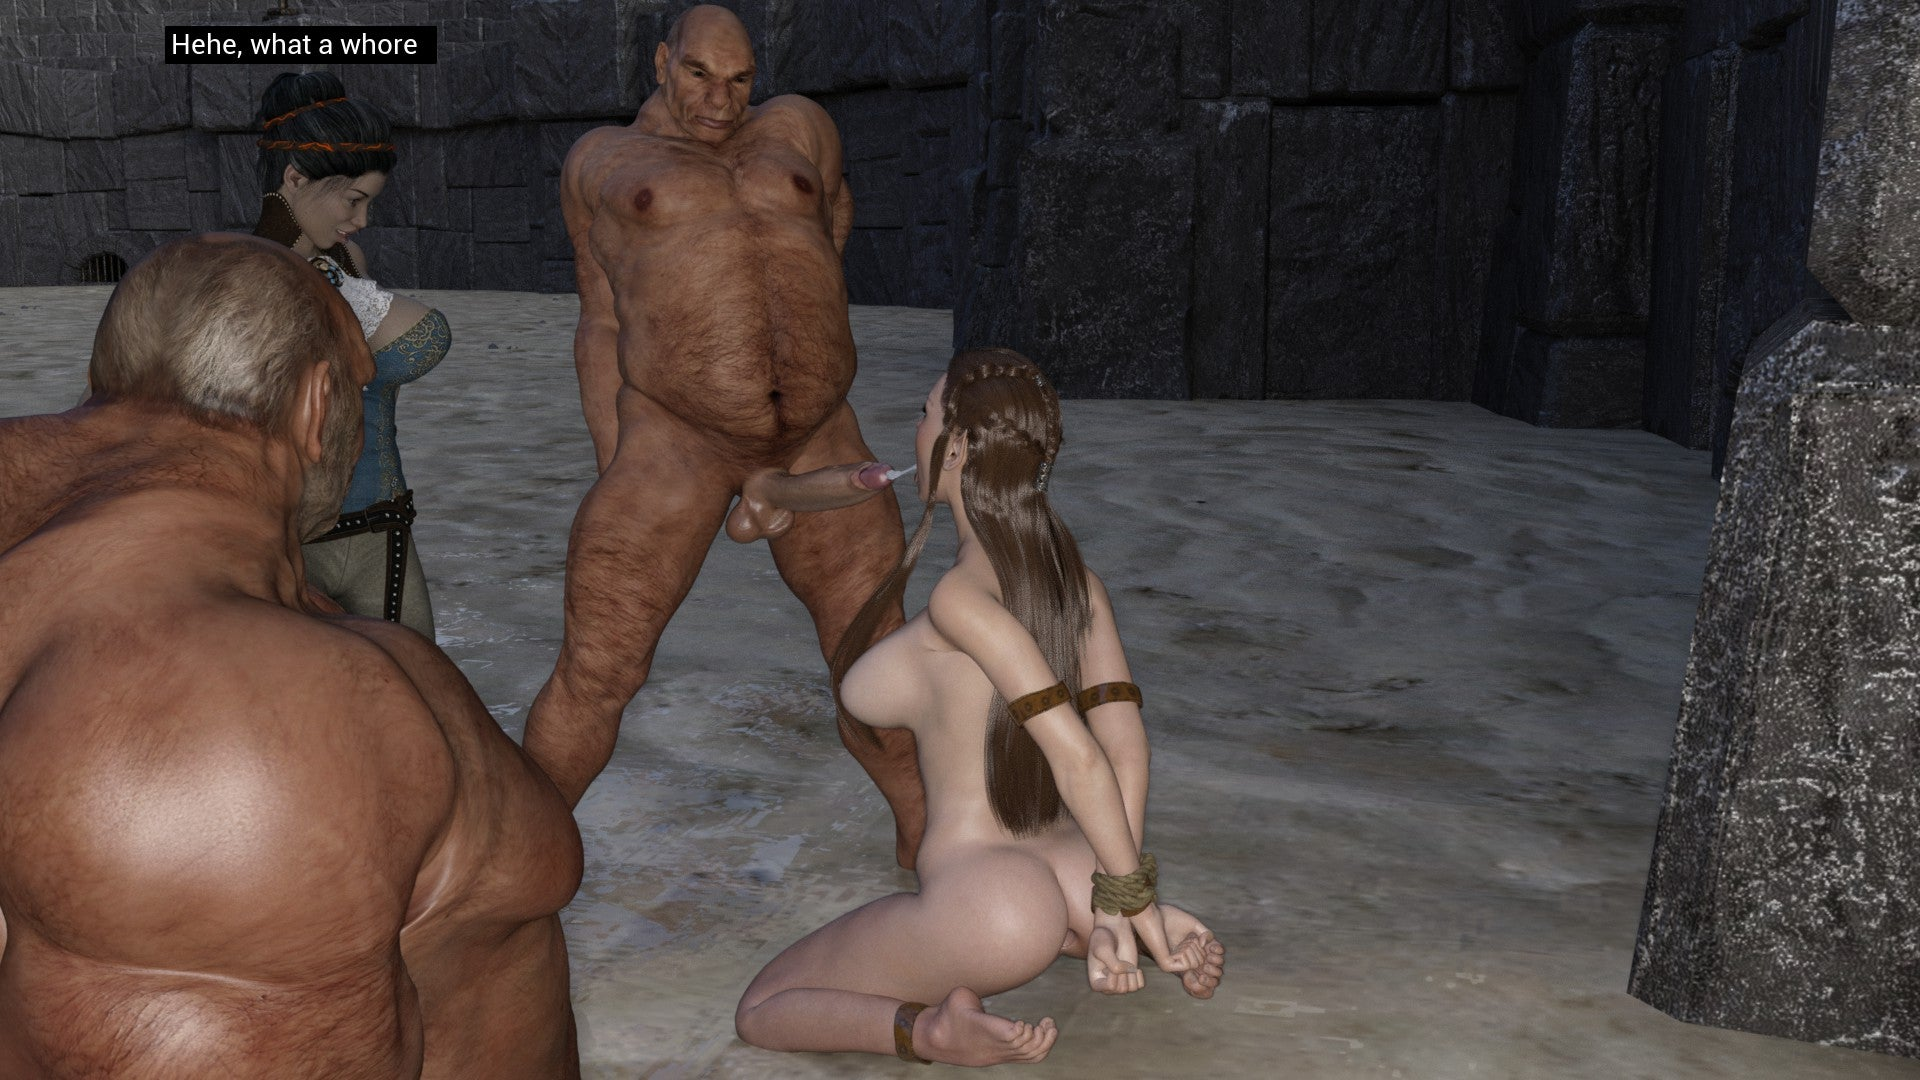 Adult Pornographic Games explicit sex games keep getting onto steam [nsfw] | kotaku